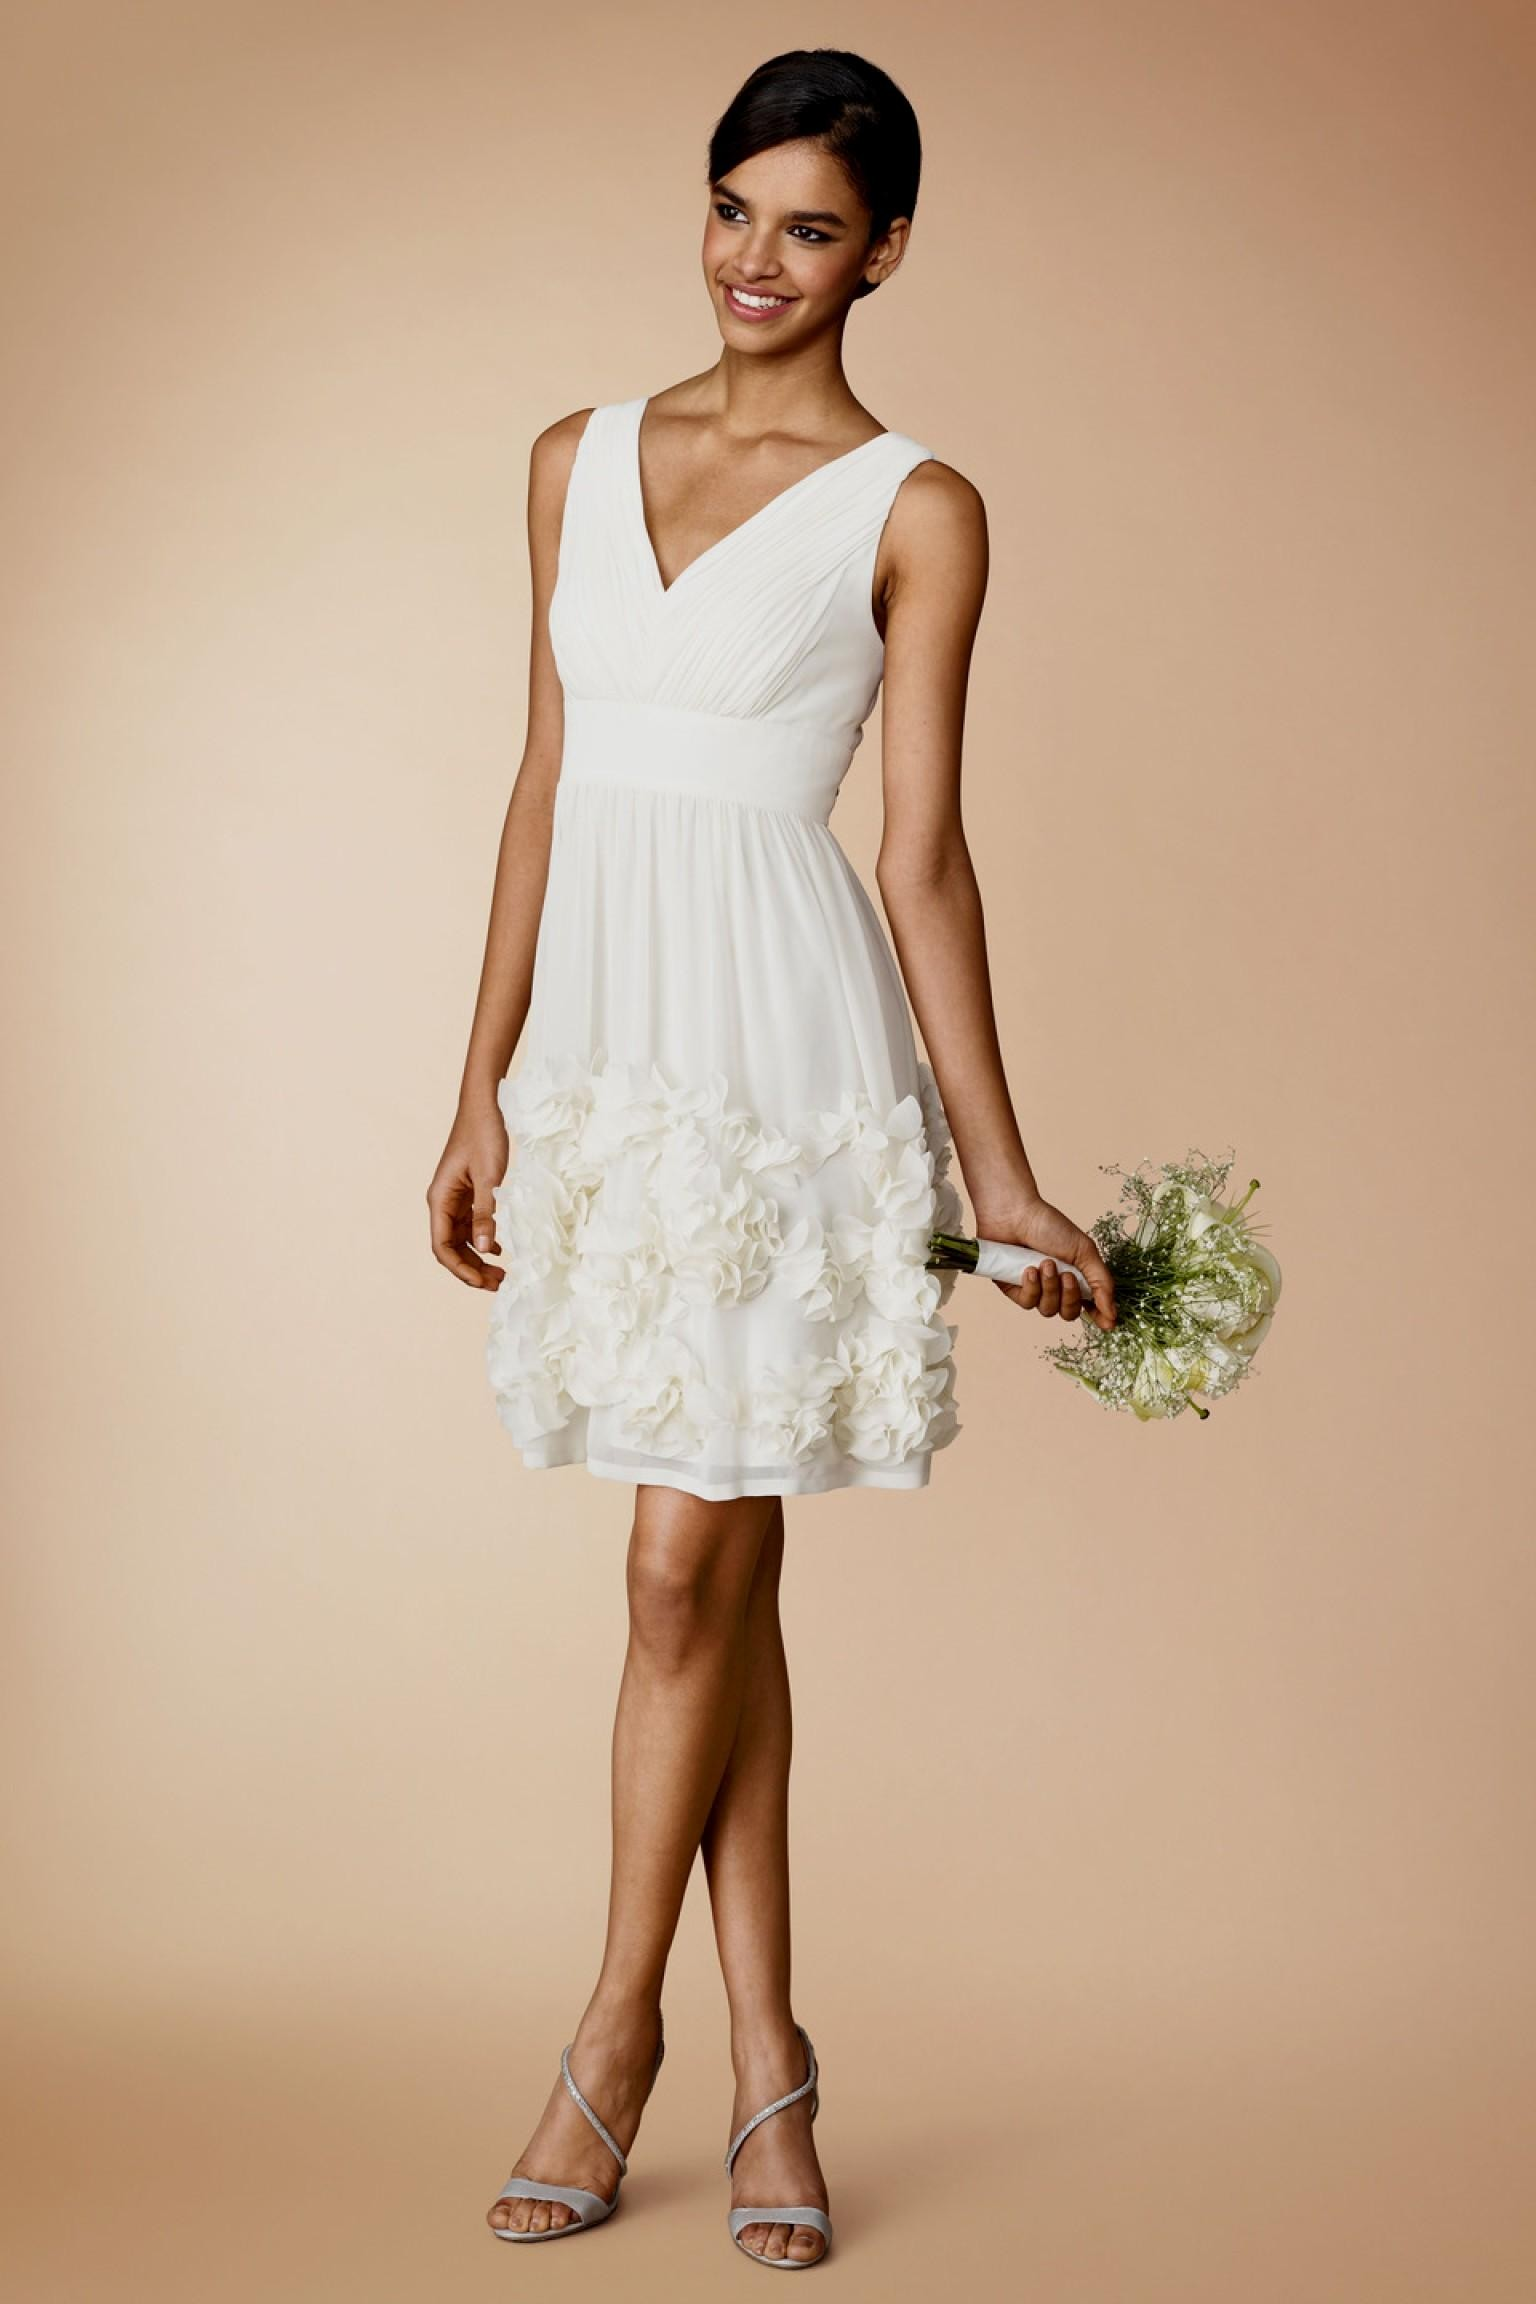 simple white dresses for courthouse wedding photo - 1